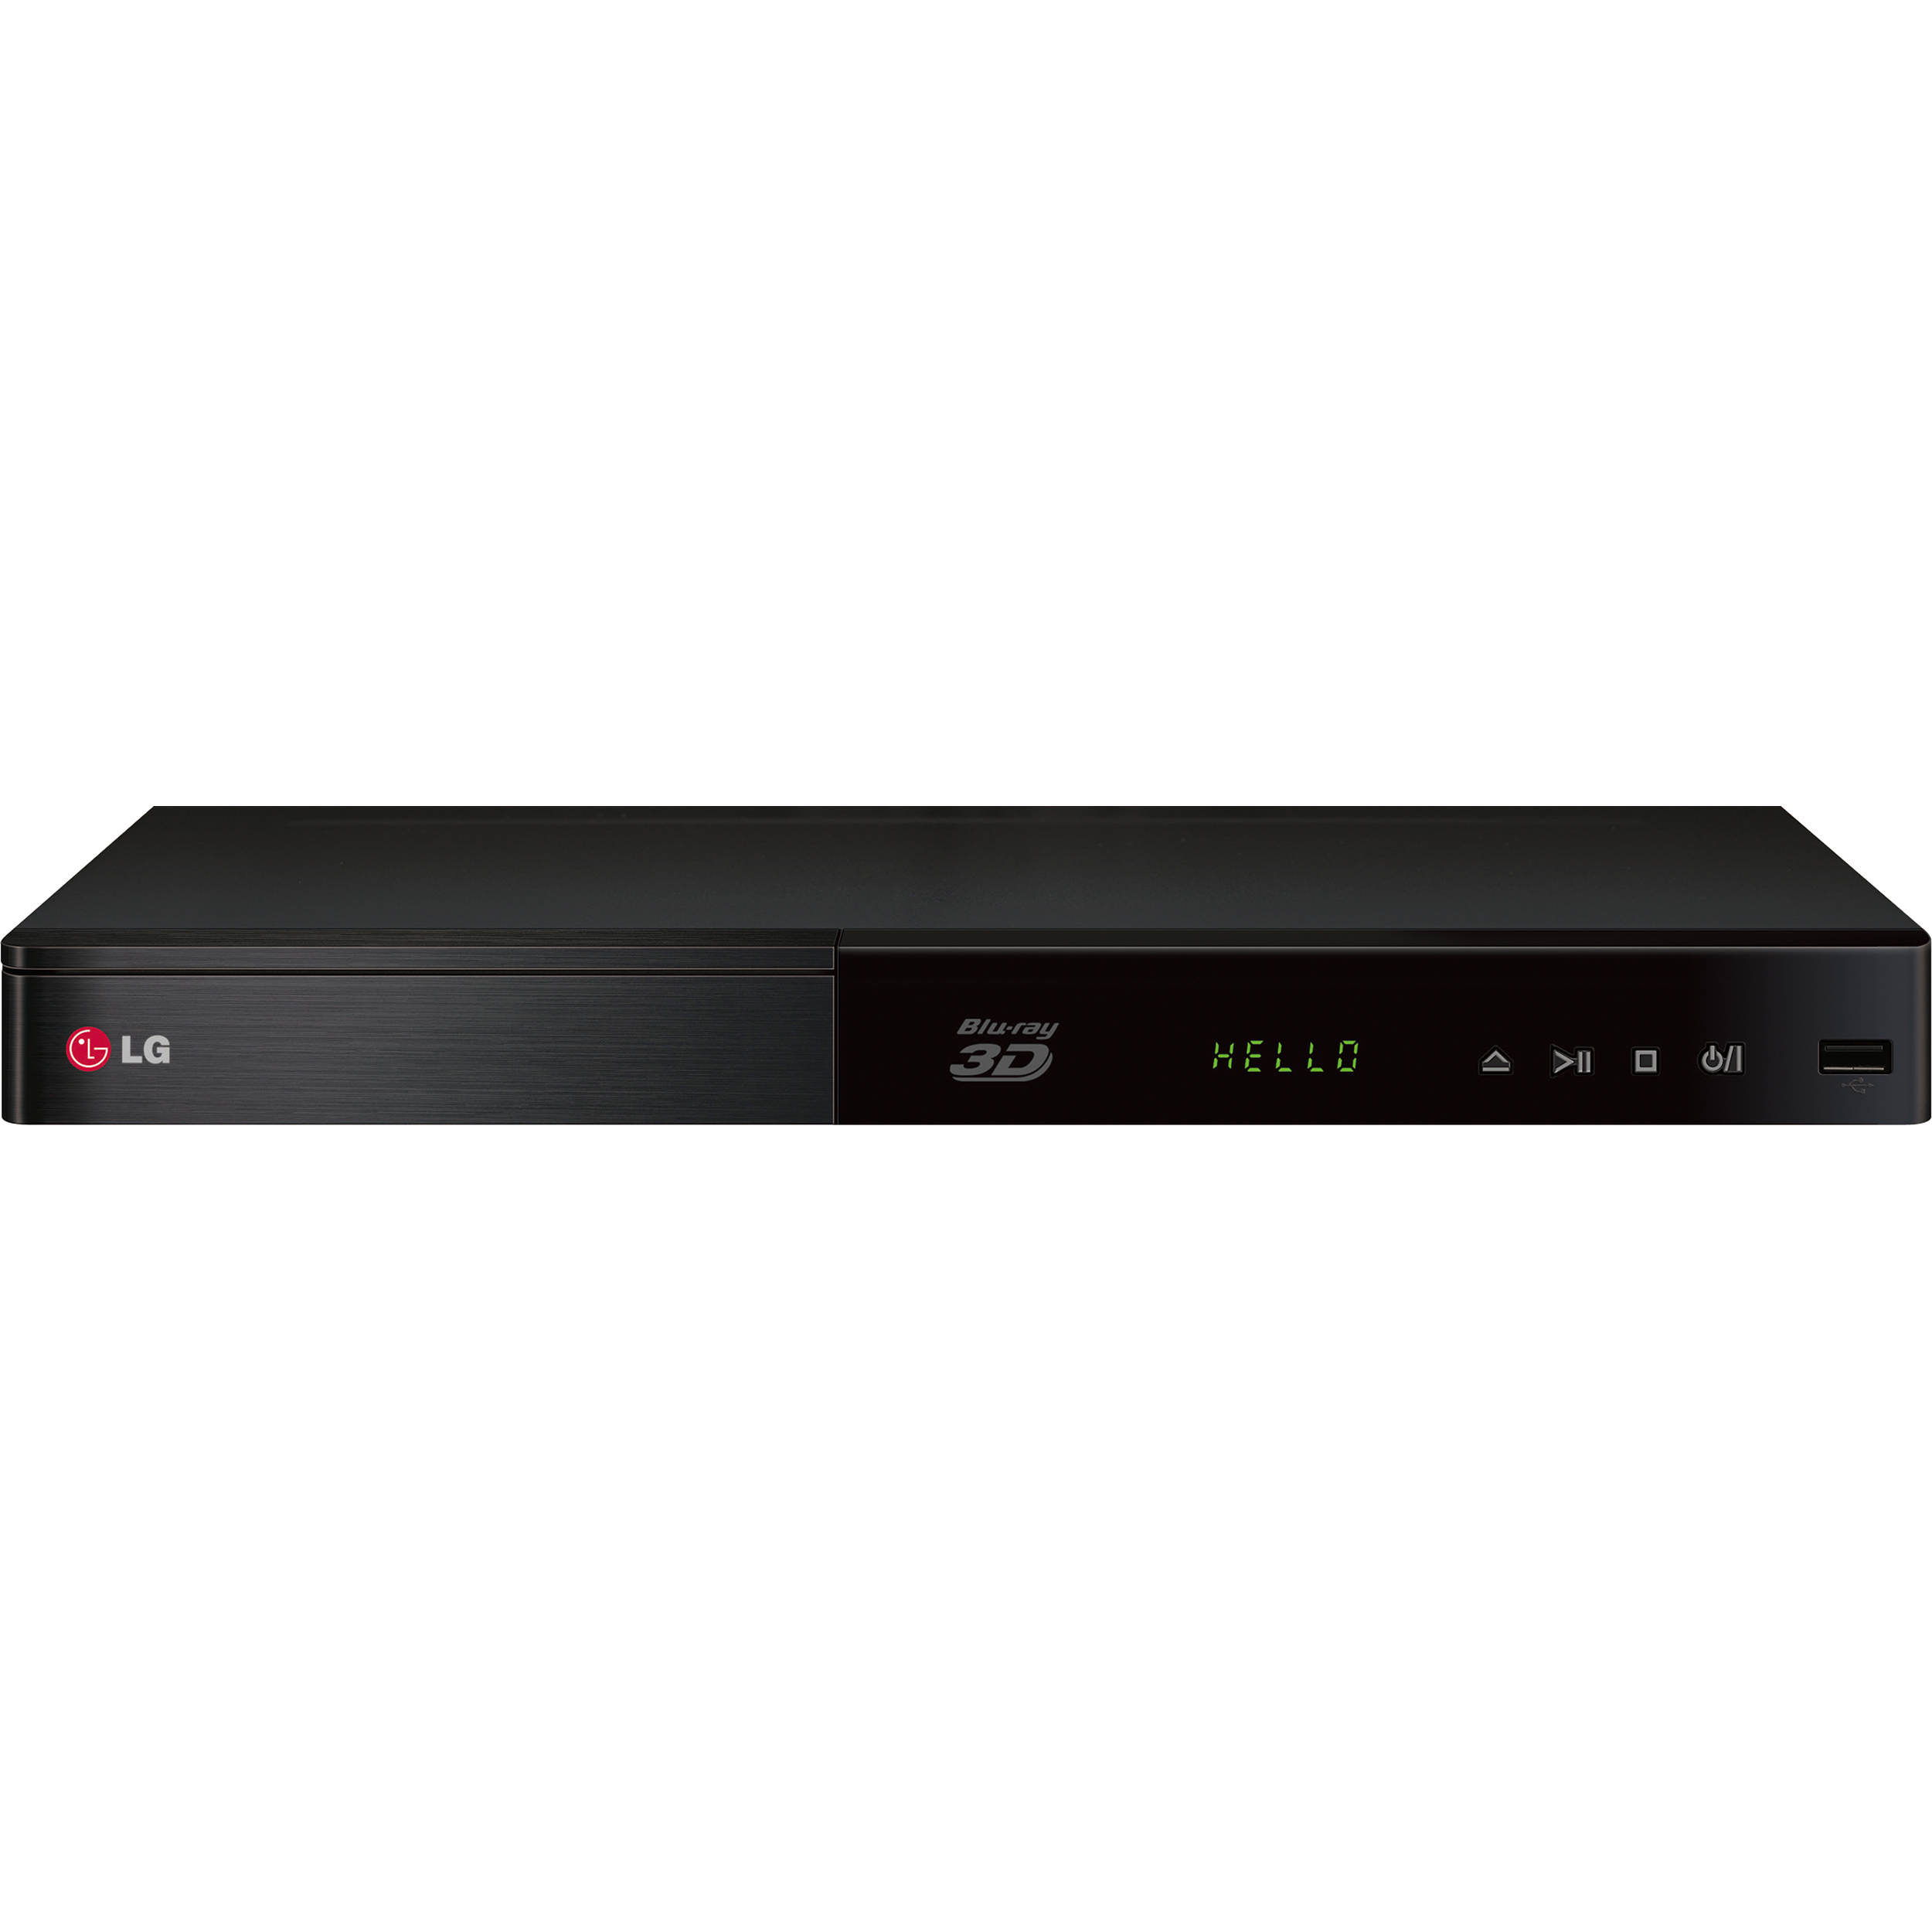 LG BP540 3D-Capable Blu-ray Disc Player BP540 B&H Photo Video